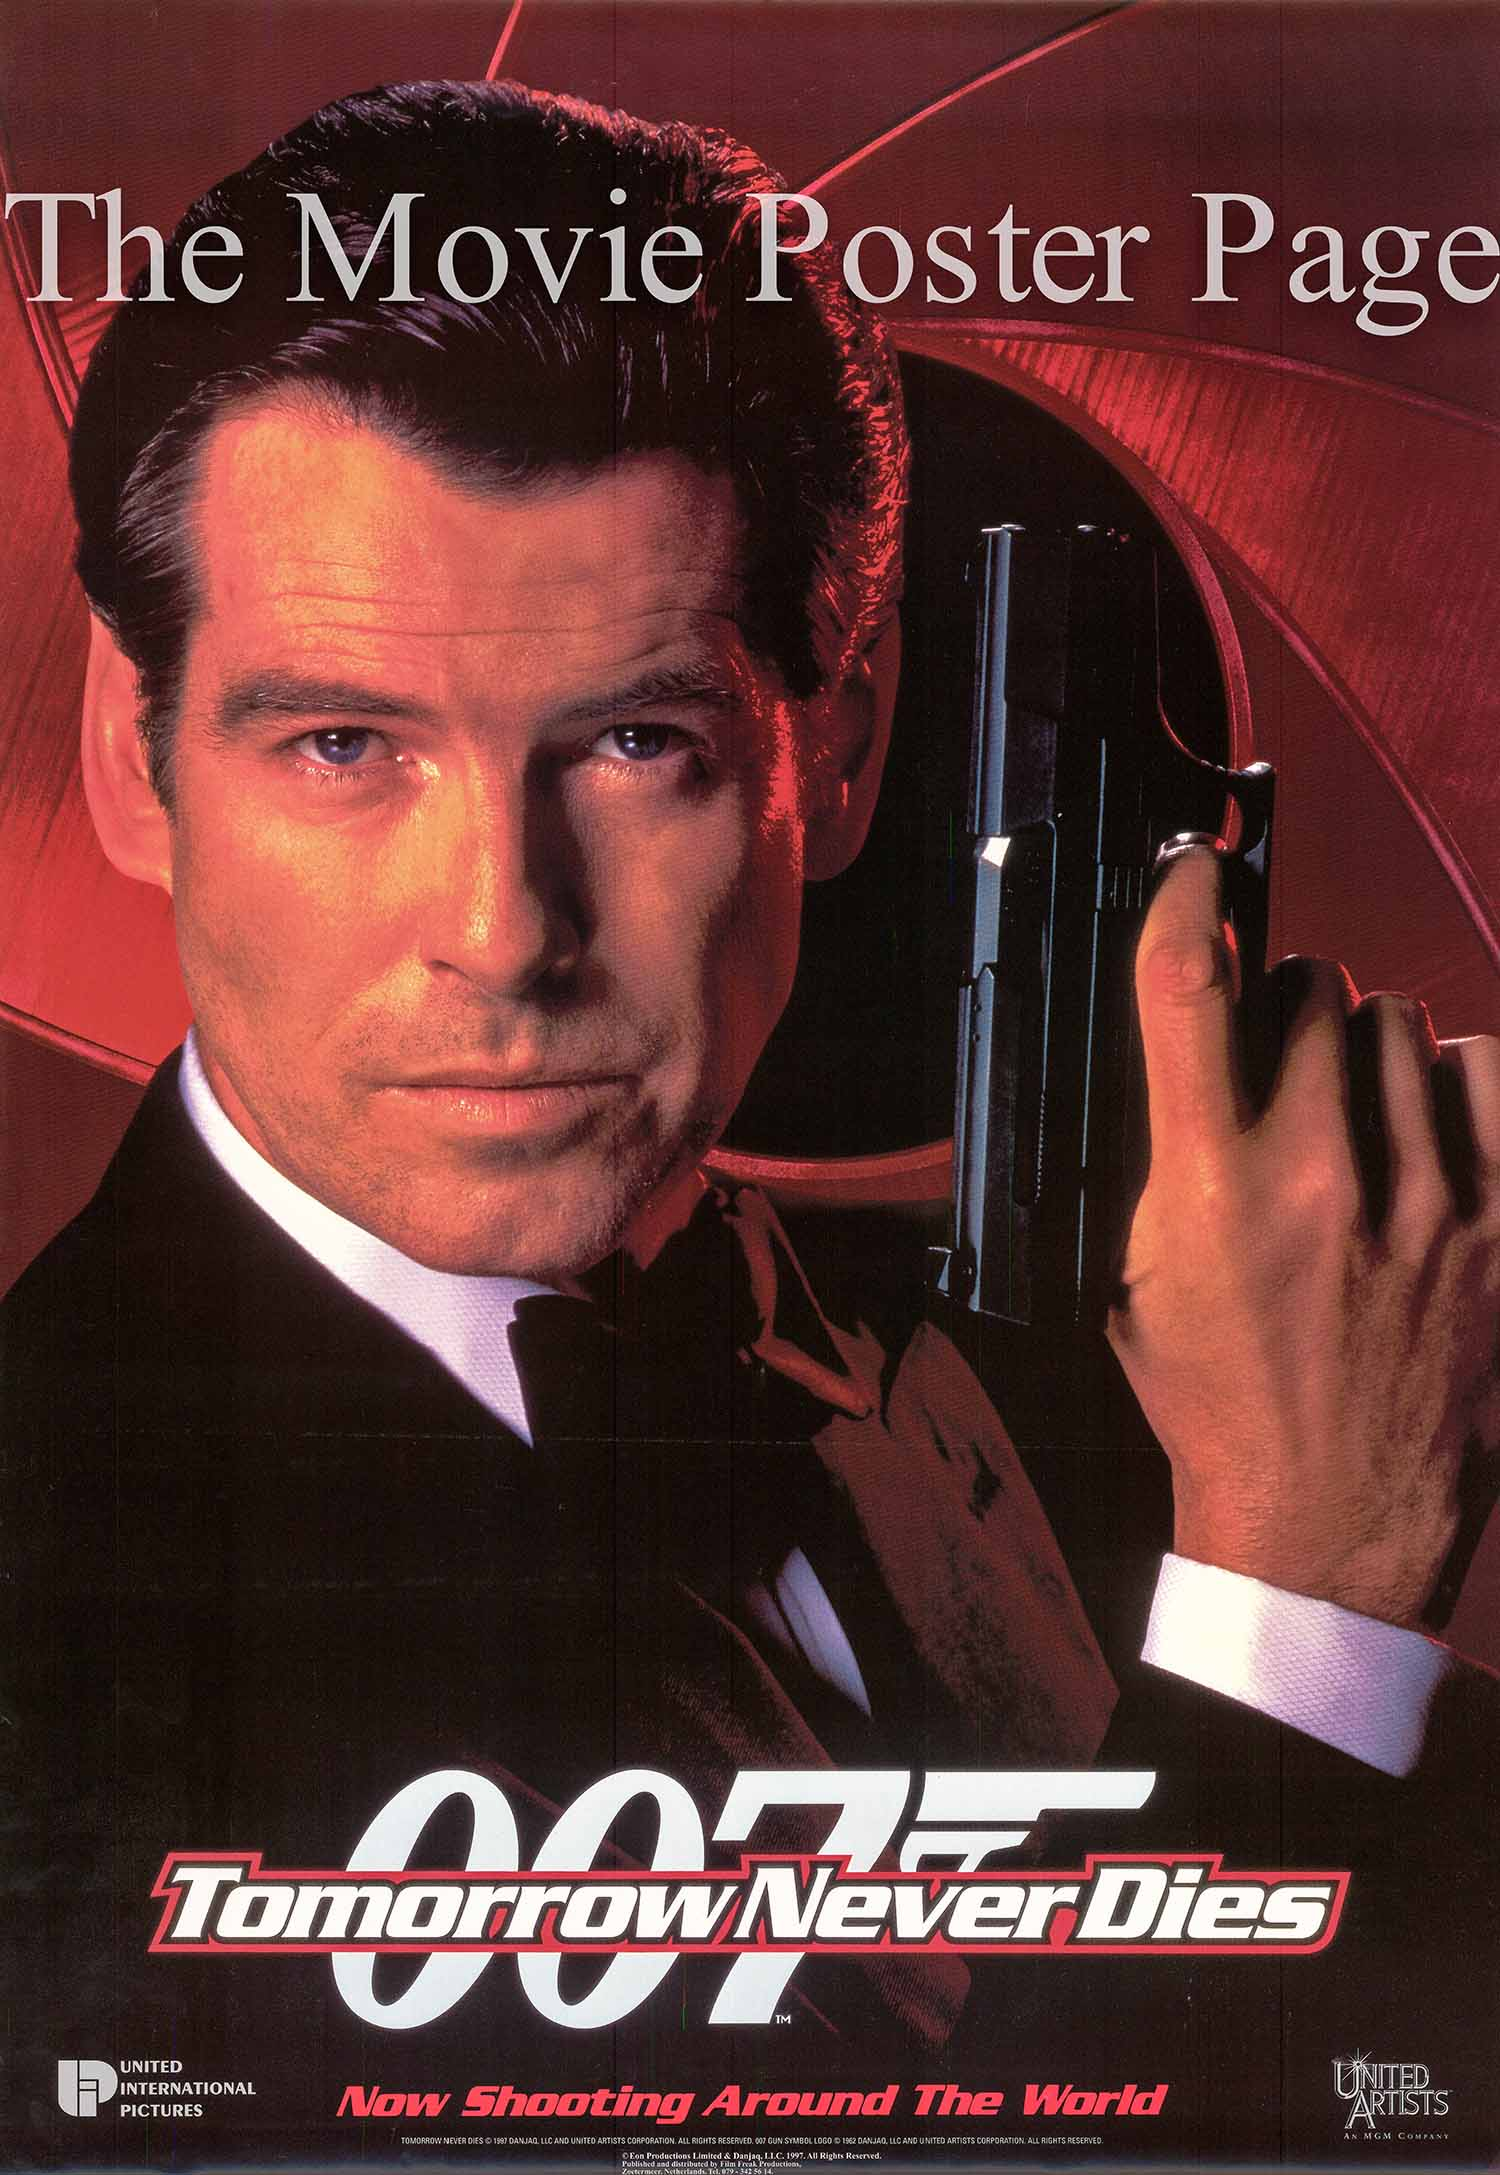 Pictured is an international advance promotional poster for the 1997 Roger Spotiswoode film Tomorrow Never Dies starring Pierce Brosnan as James Bond.